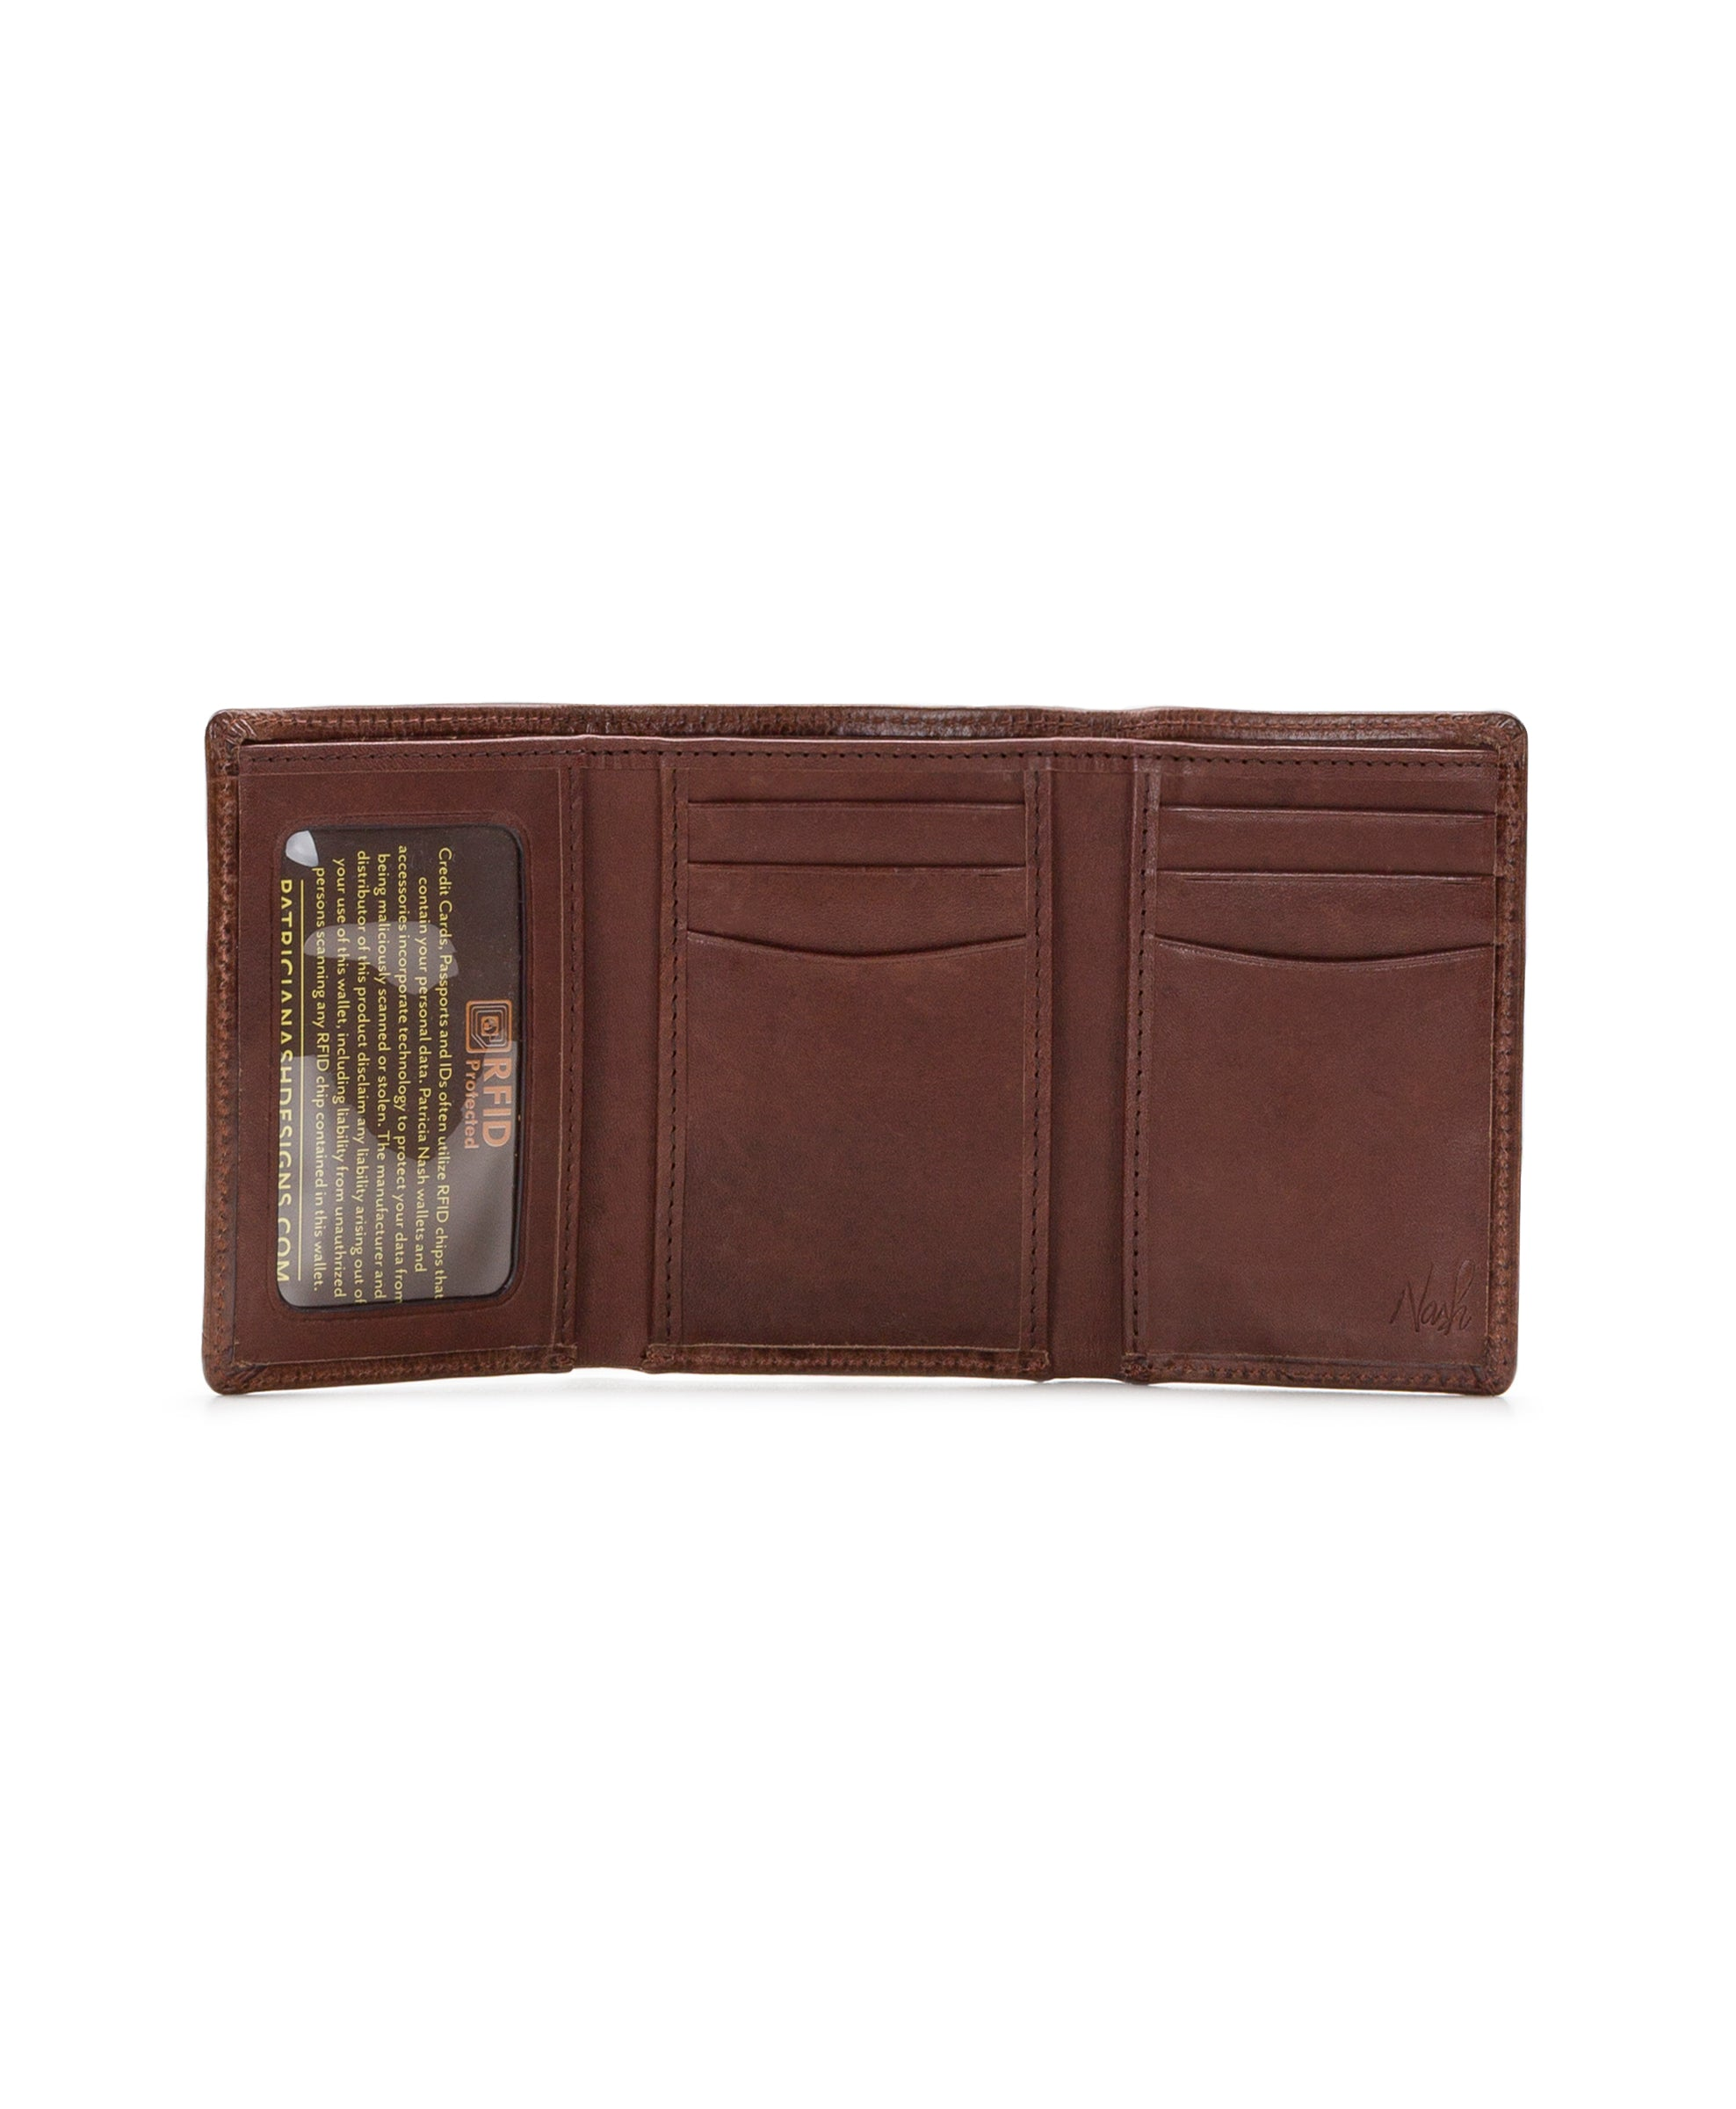 Trifold Wallet - Vintage Leather 2